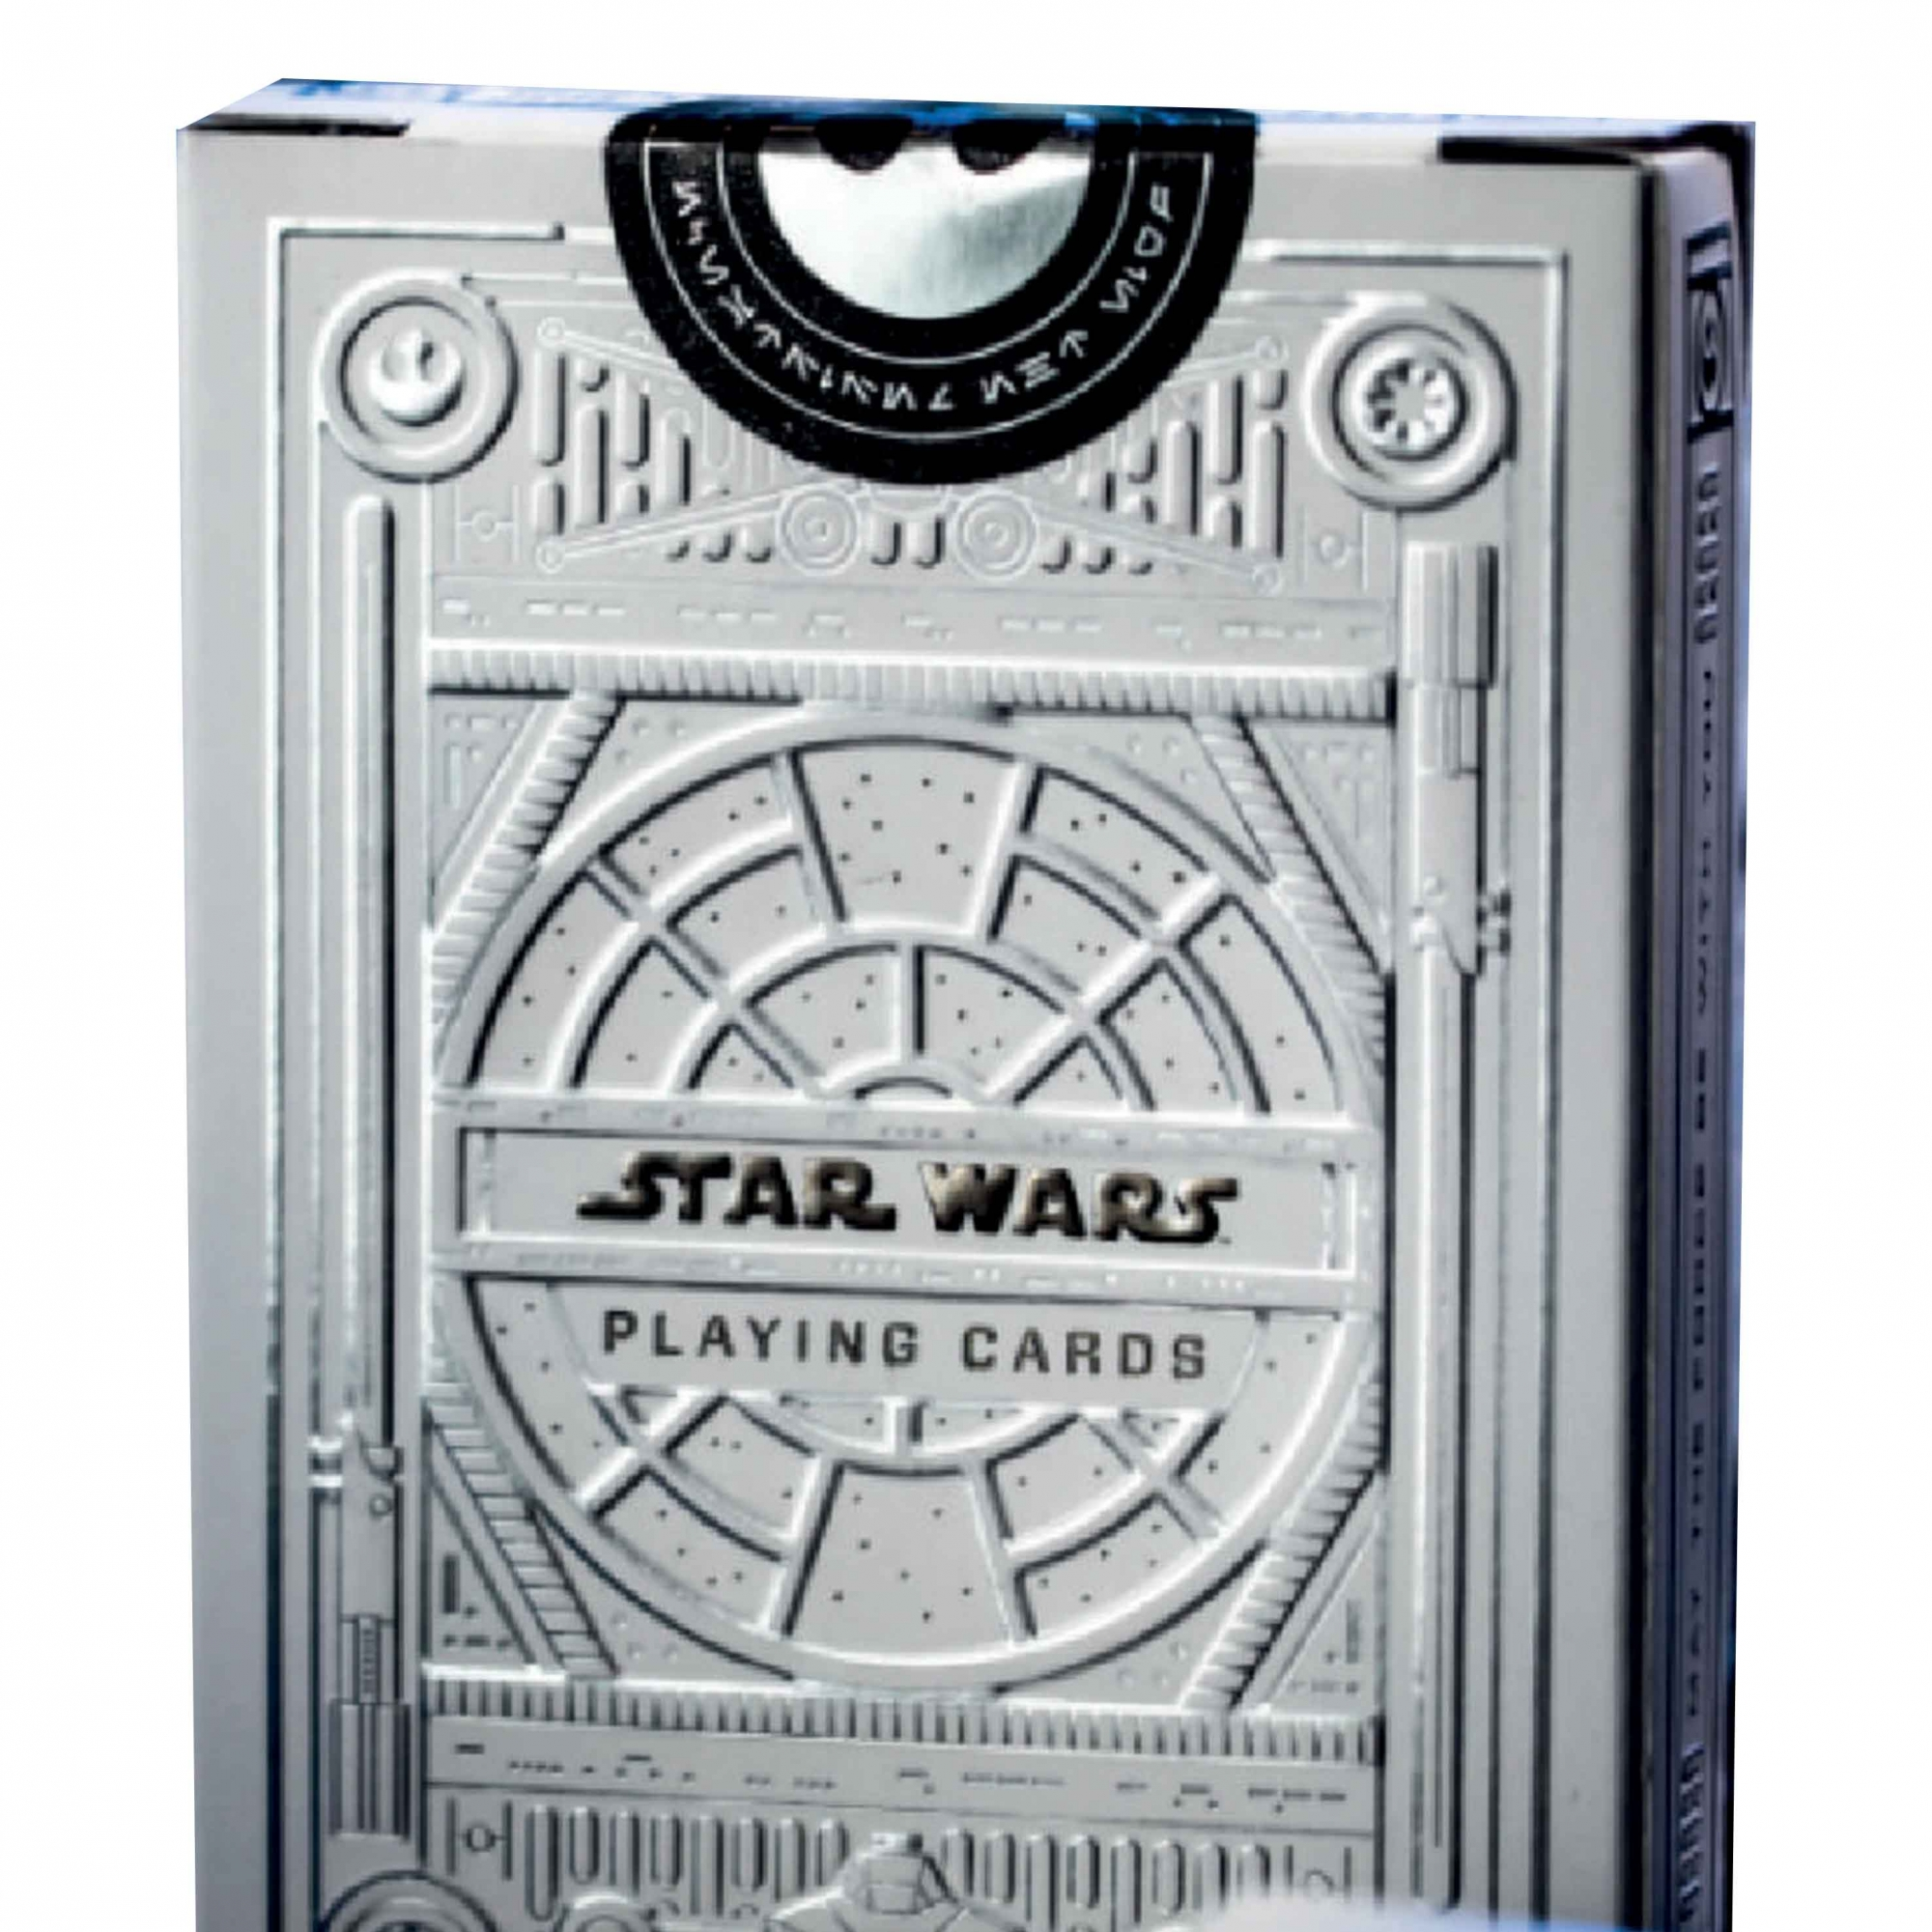 Baralho Star Wars Silver Edition White - Special Edition.